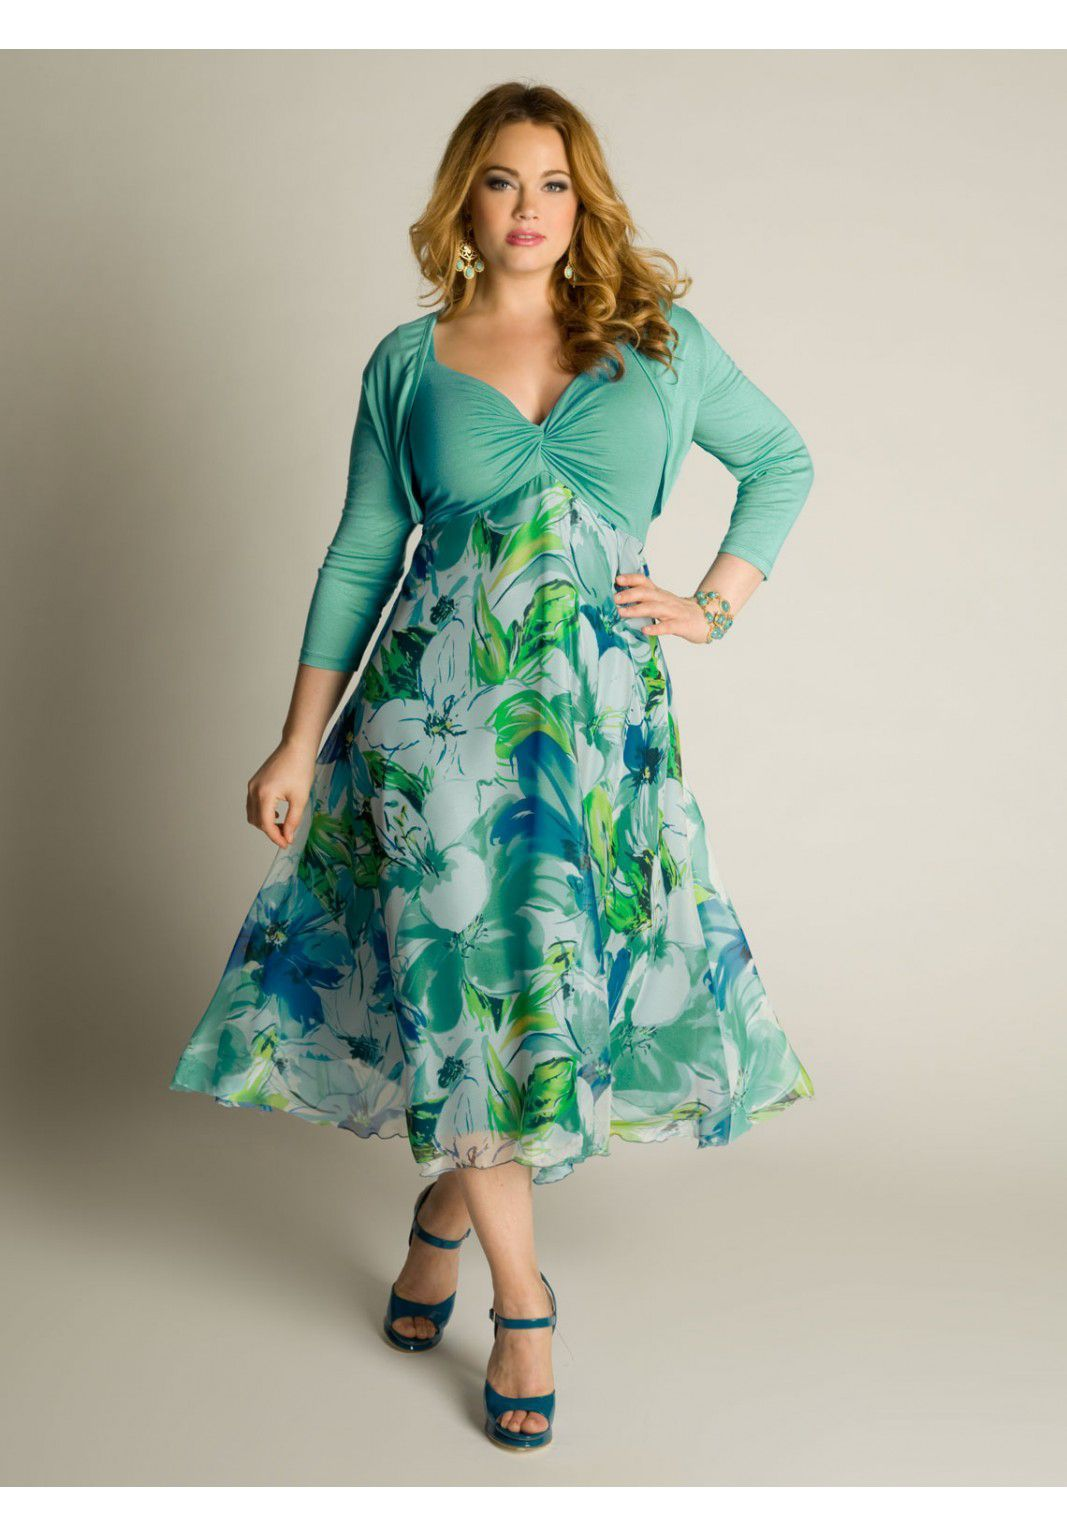 Plus Size Riella Sun Dress image - OOOooo for a spring wedding guest ...